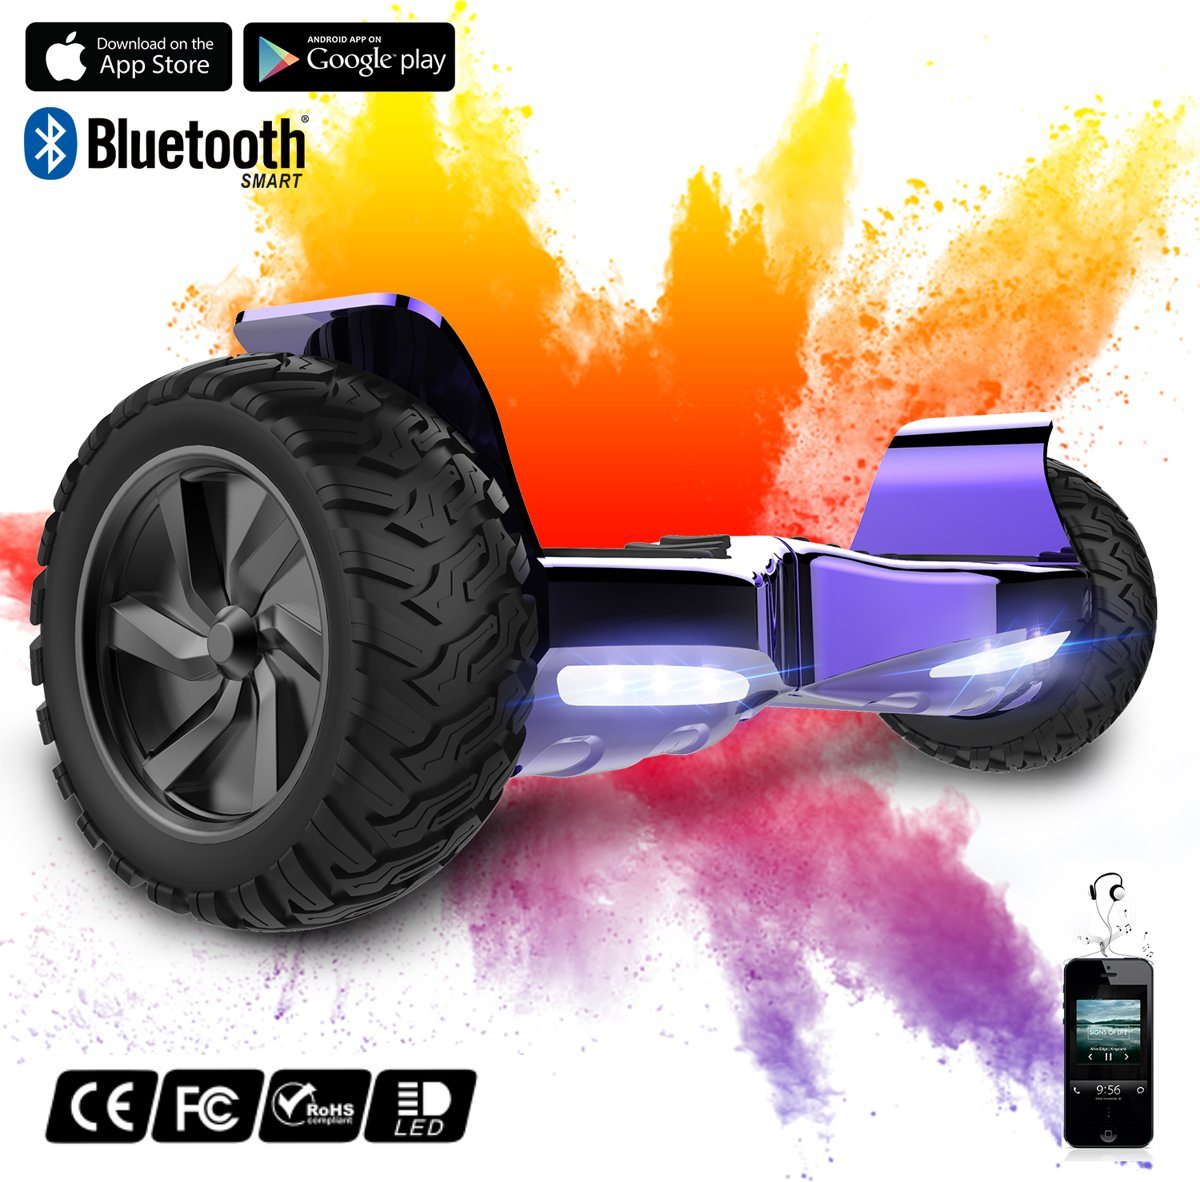 Evercross Challenger Basic 2019 Best 8.5 inch SUV Hoverboard met APP Functie 700W Motion V.12 Bluetooth speakers en met TAOTAO moederbord - Paars Chroom